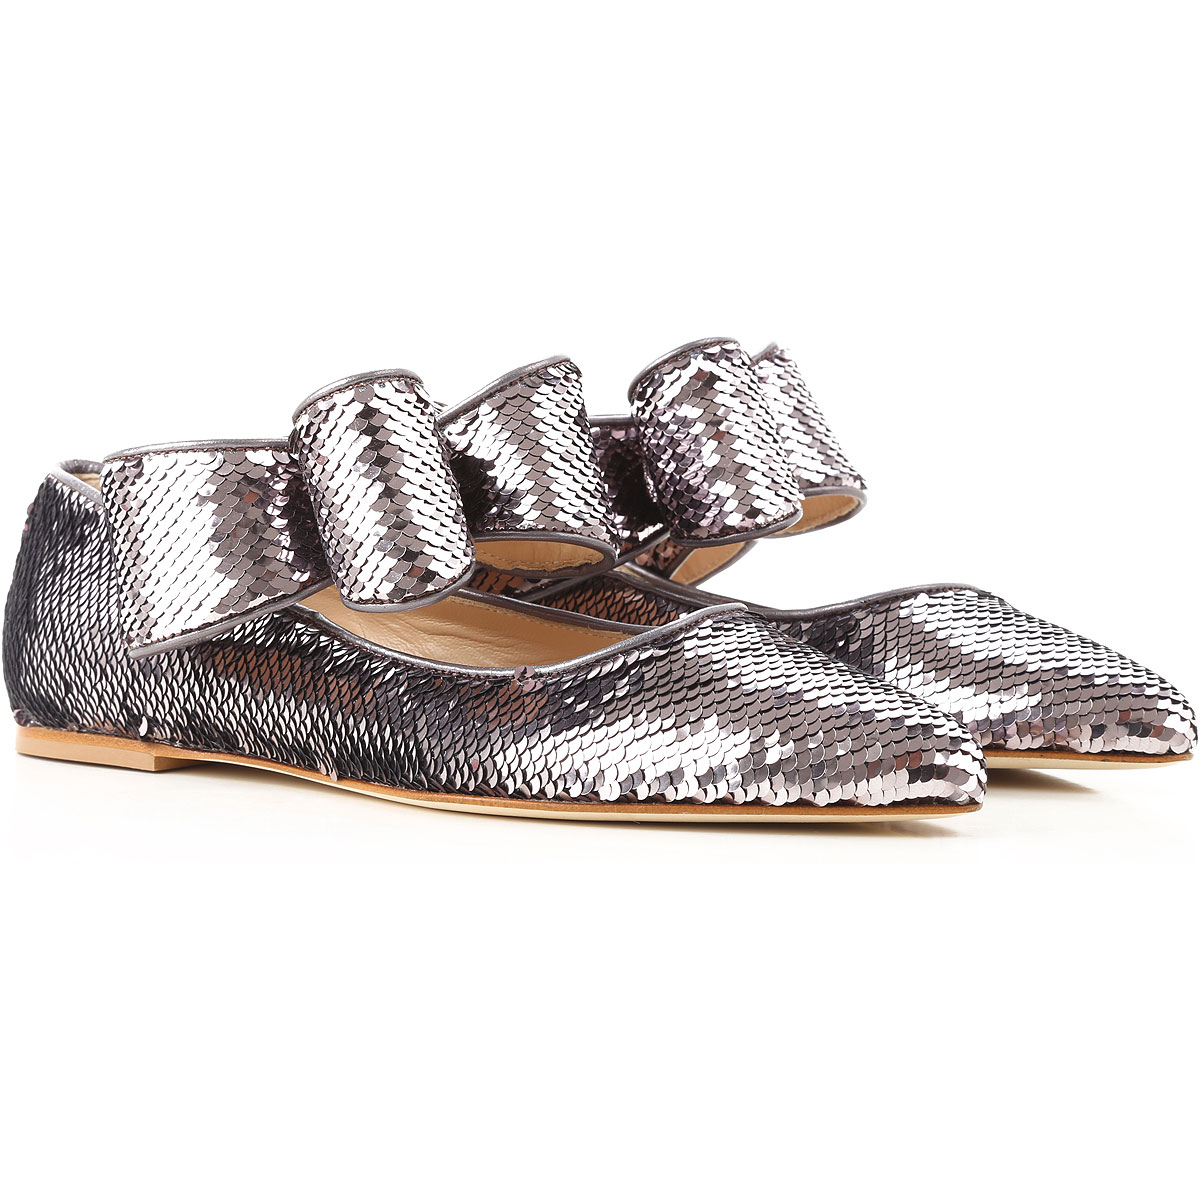 Image of Polly Plume Ballet Flats Ballerina Shoes for Women, Silver, paillettes, 2017, 6 7 8 9